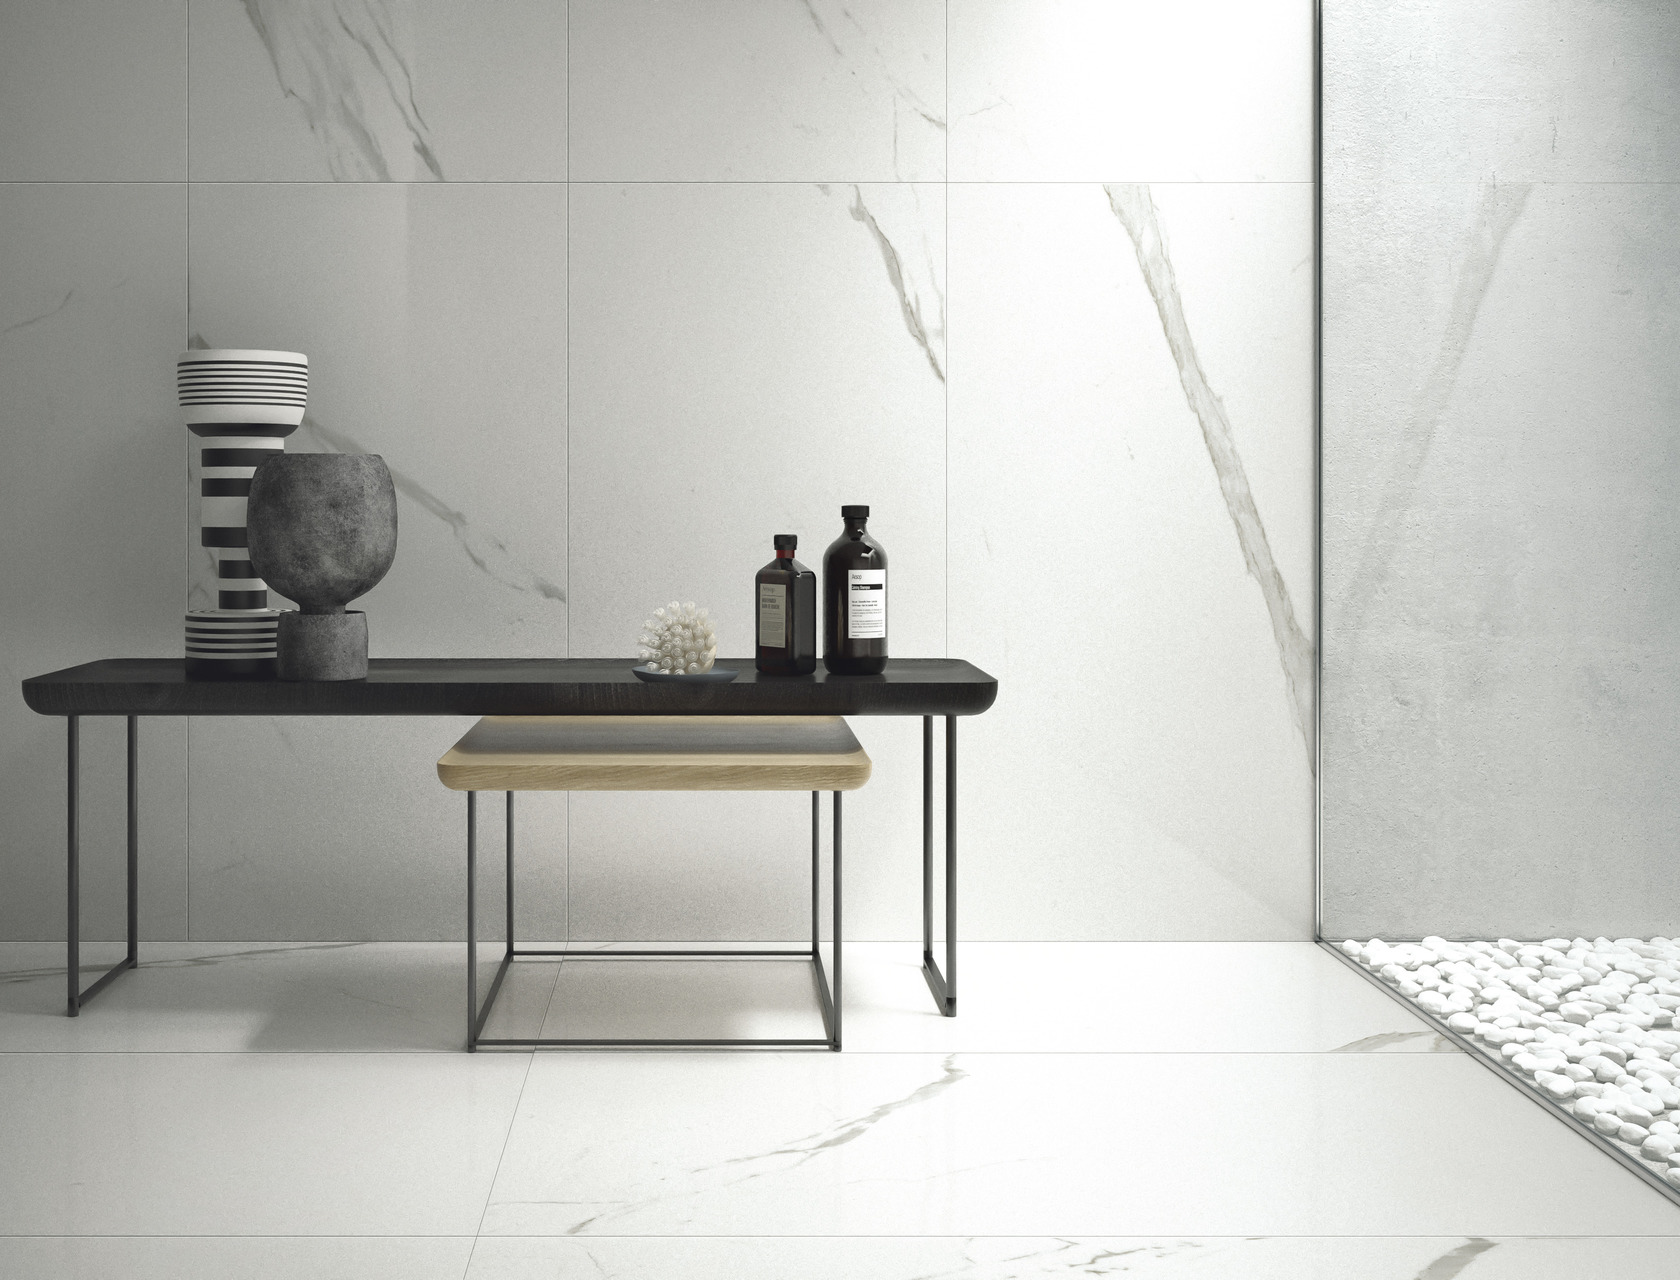 to porcel by drama floor beautiful these apartment this polished news book homify featured porcelain in luxury thin and ultra china ideas chinal aw tiles floors monalisa latest clay porcelin feature add